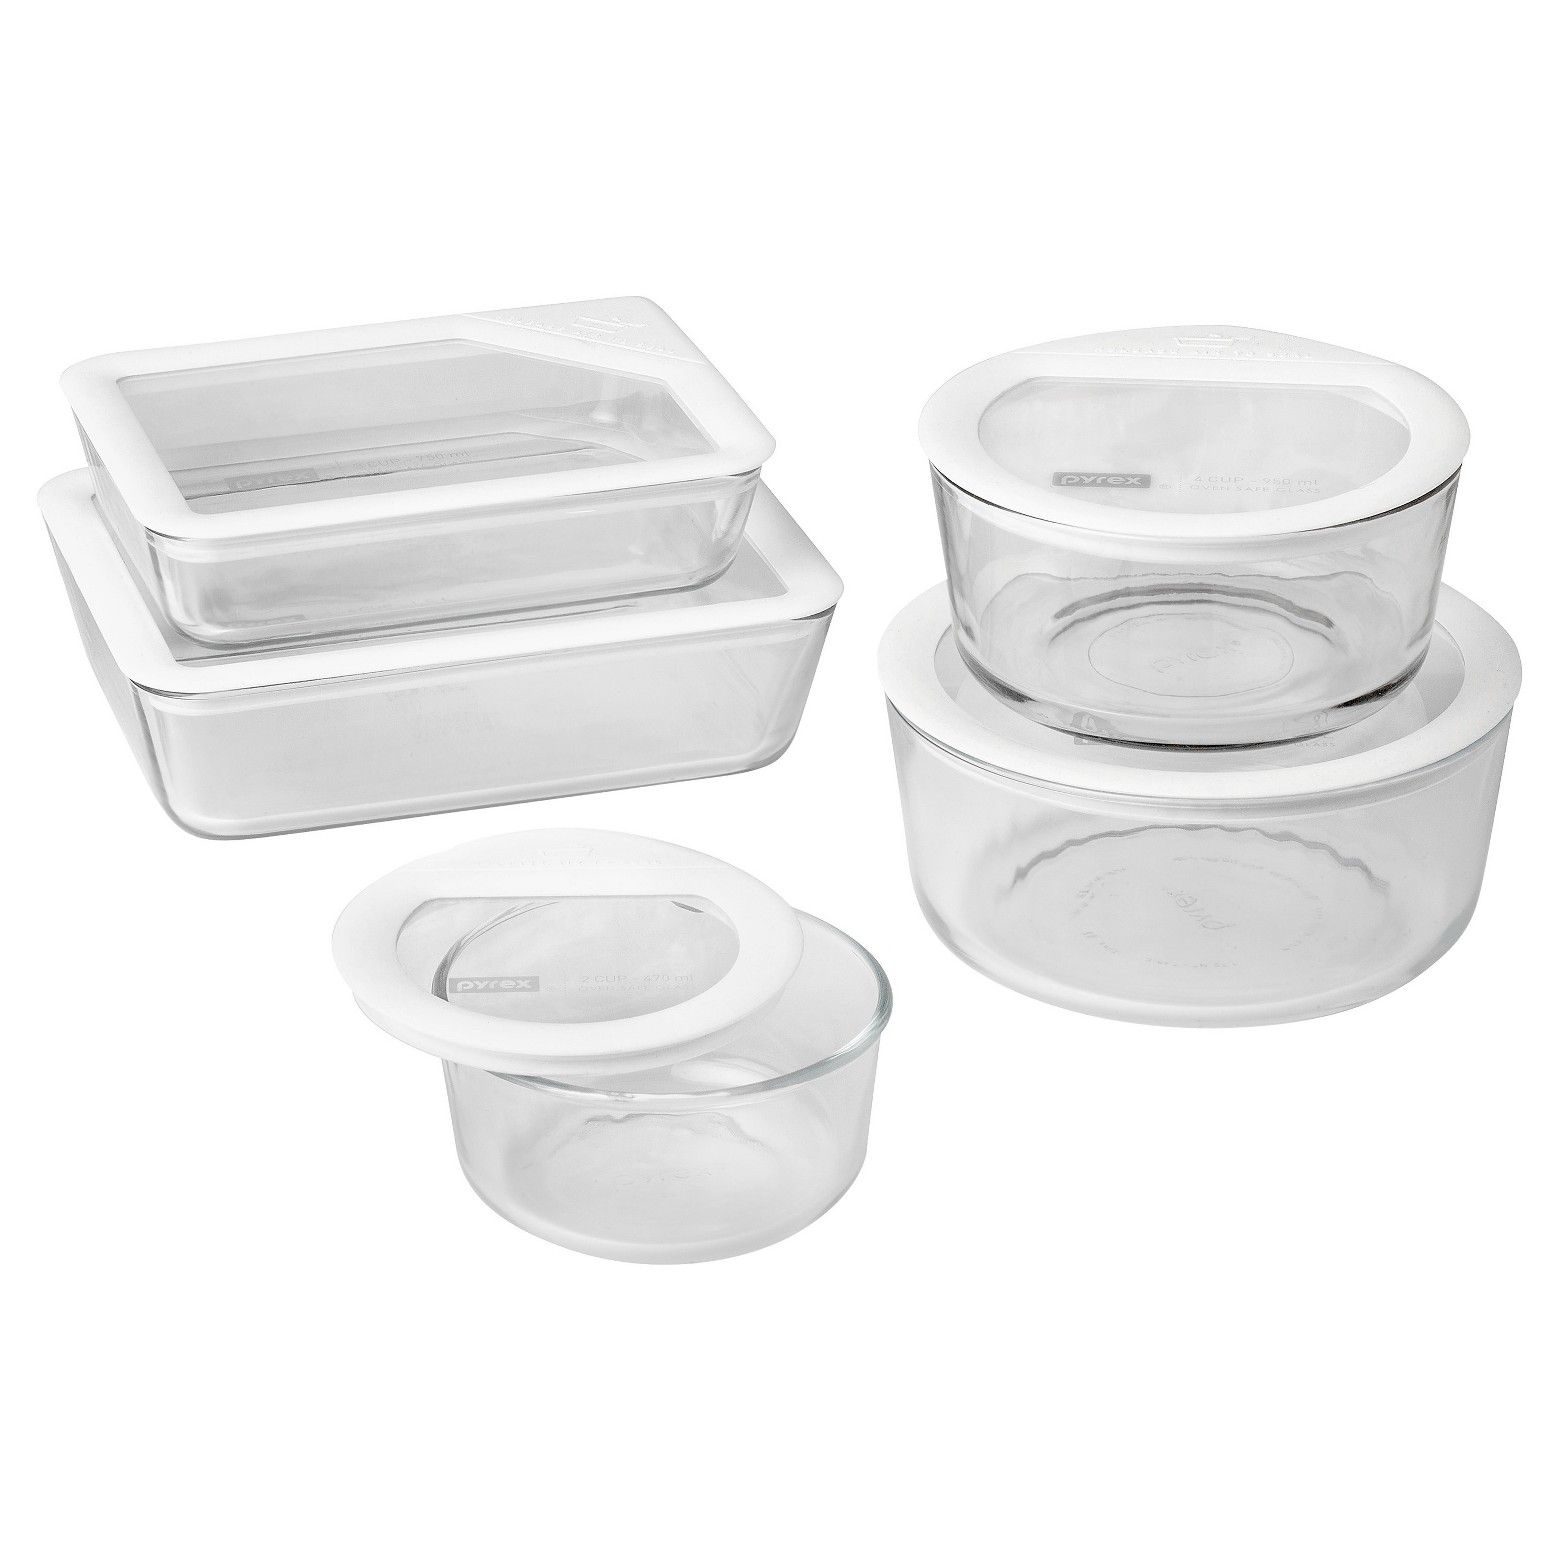 Pyrex 10pc Ultimate Glass Lid Set White Glass Food Storage Food Storage Container Set Pyrex Storage